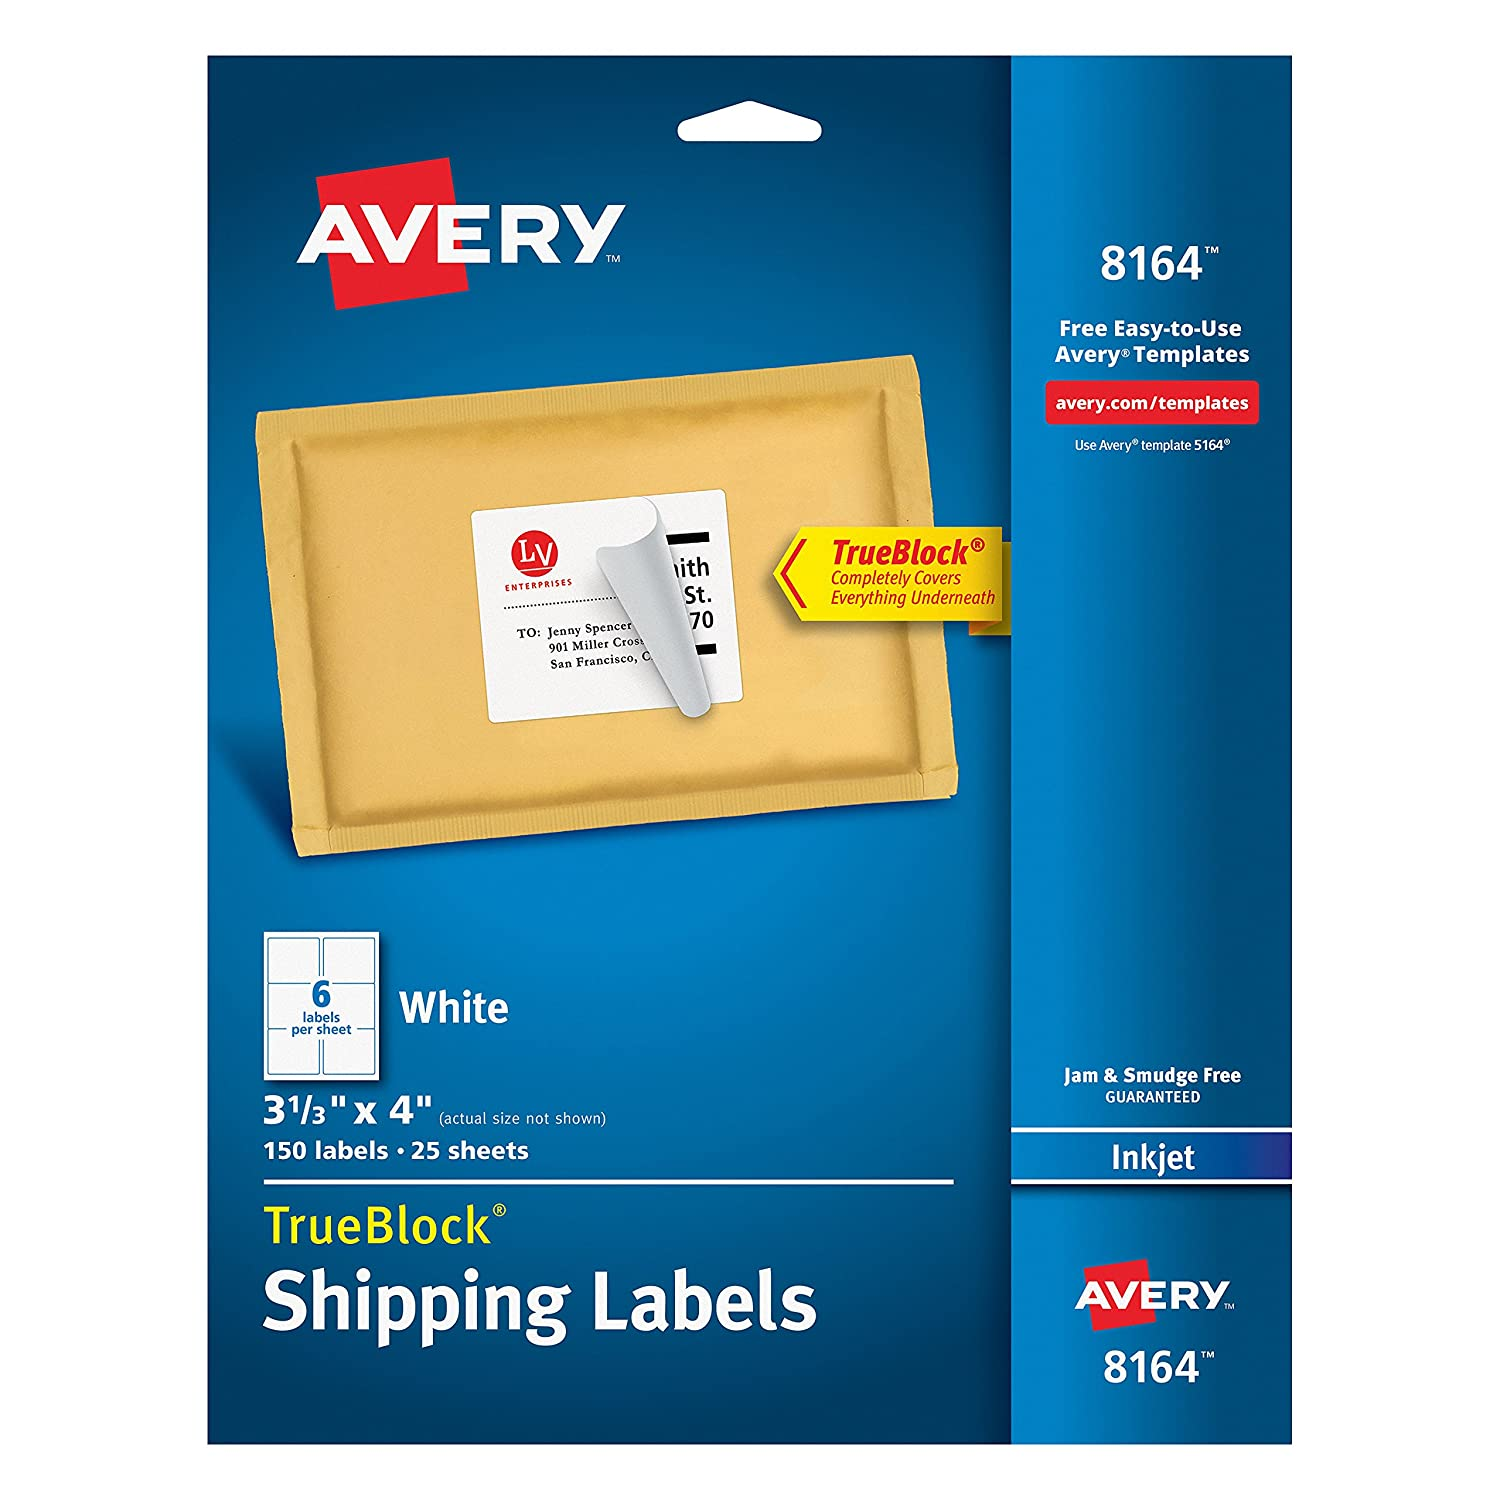 Avery Shipping Labels for Ink Jet Printers with TrueBlock Technology, 3.33 x 4 Inches, White, Pack of 150 (8164) Pack of 150 (8164)